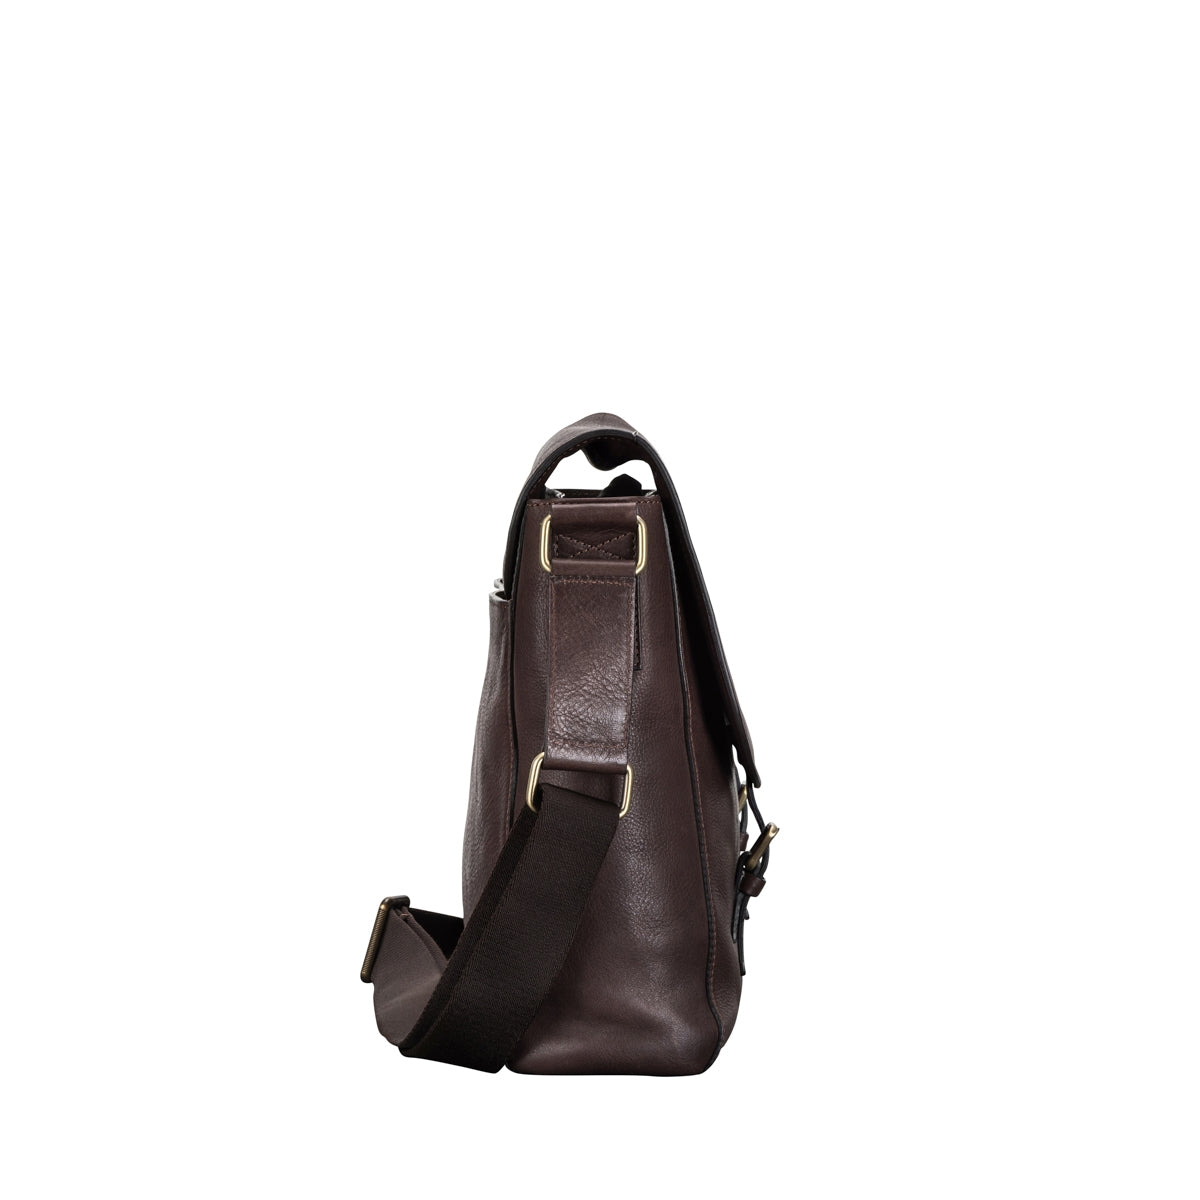 Image 3 of the 'Ravenna' Brown Leather Classic Men's Satchel Bag